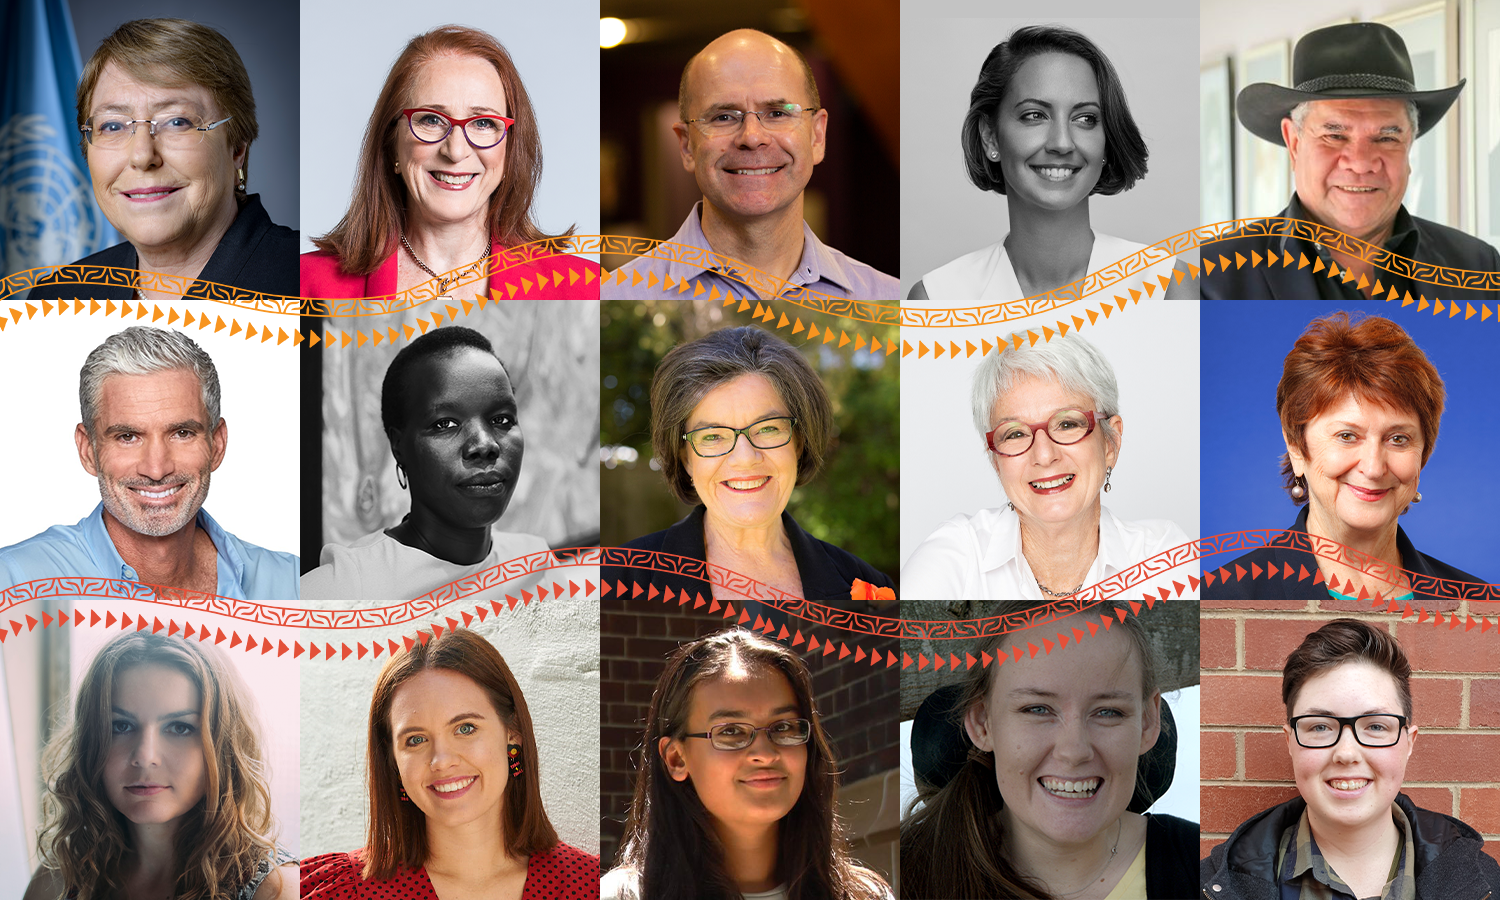 Grid of headshots of speakers for Free and Equal Conference